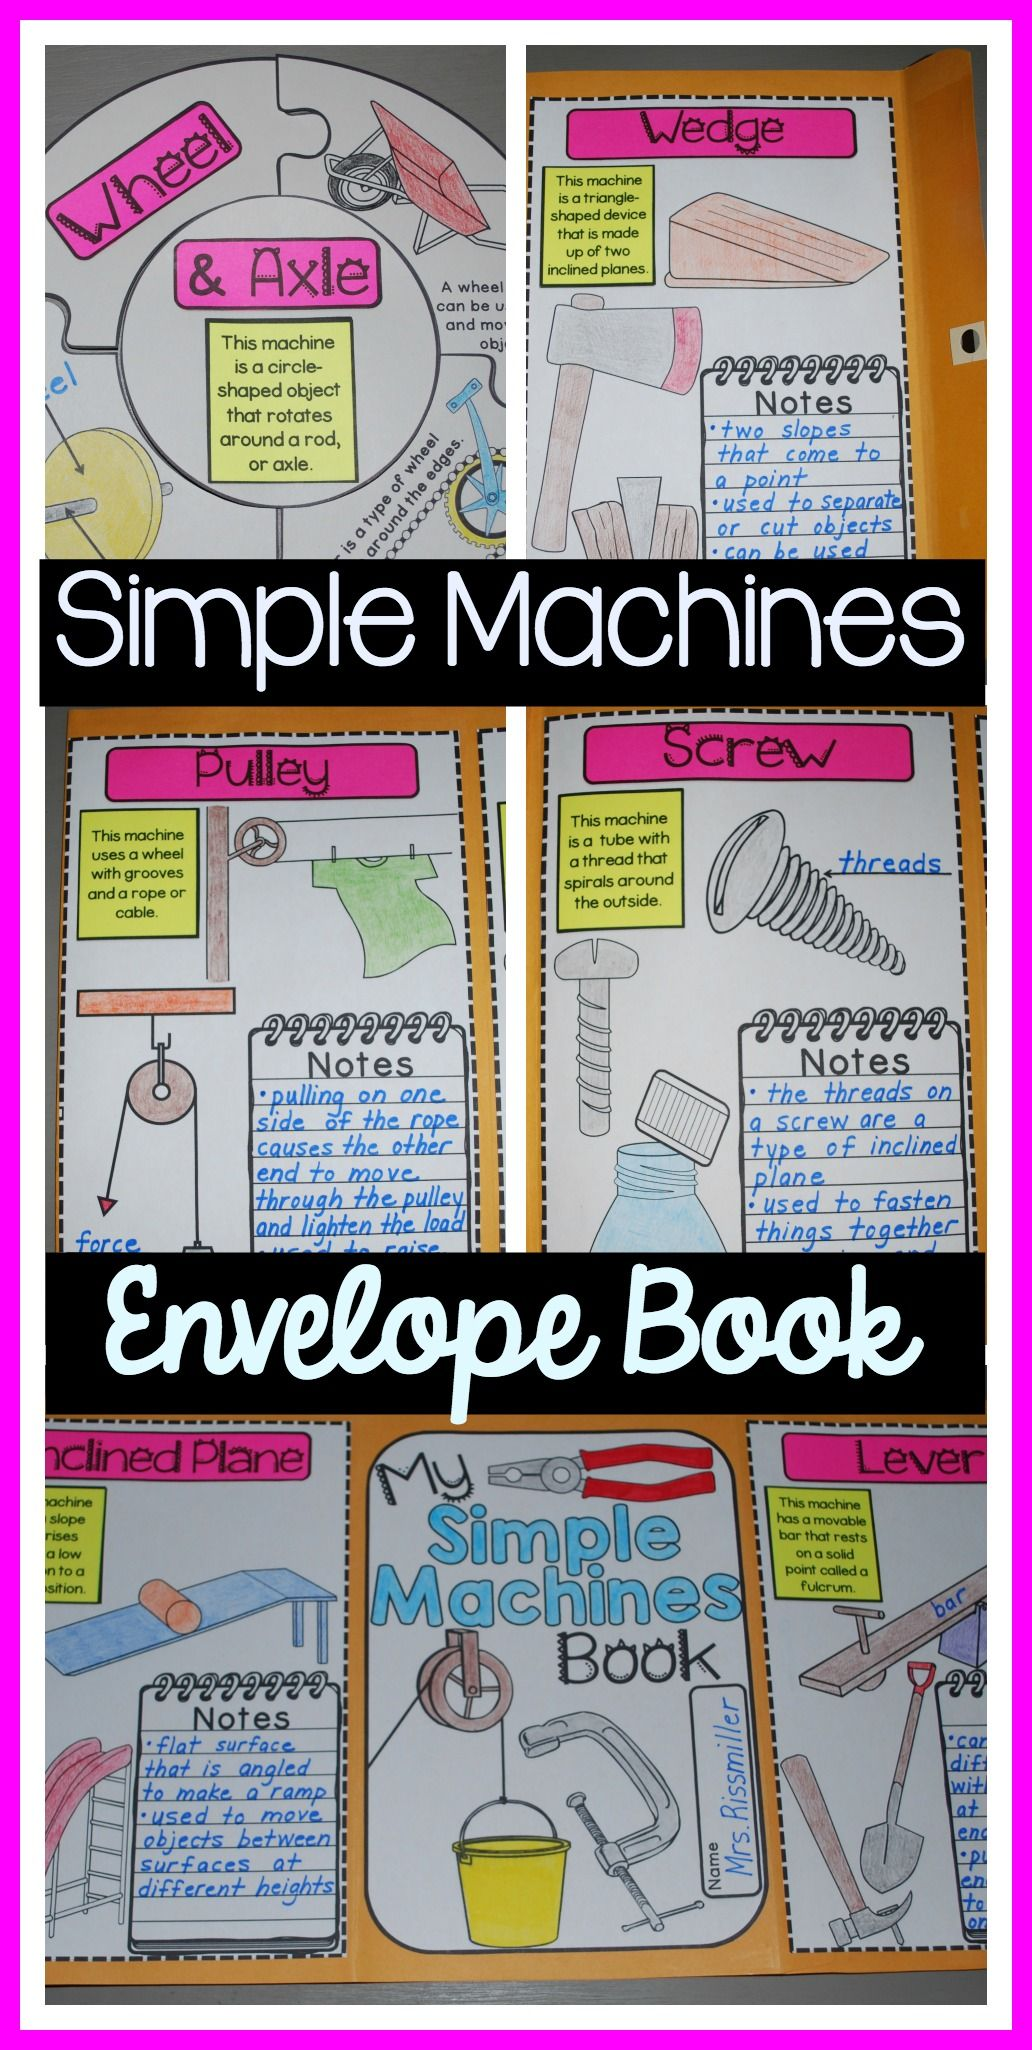 medium resolution of Simple Machines Worksheets For 6th Grade   Printable Worksheets and  Activities for Teachers